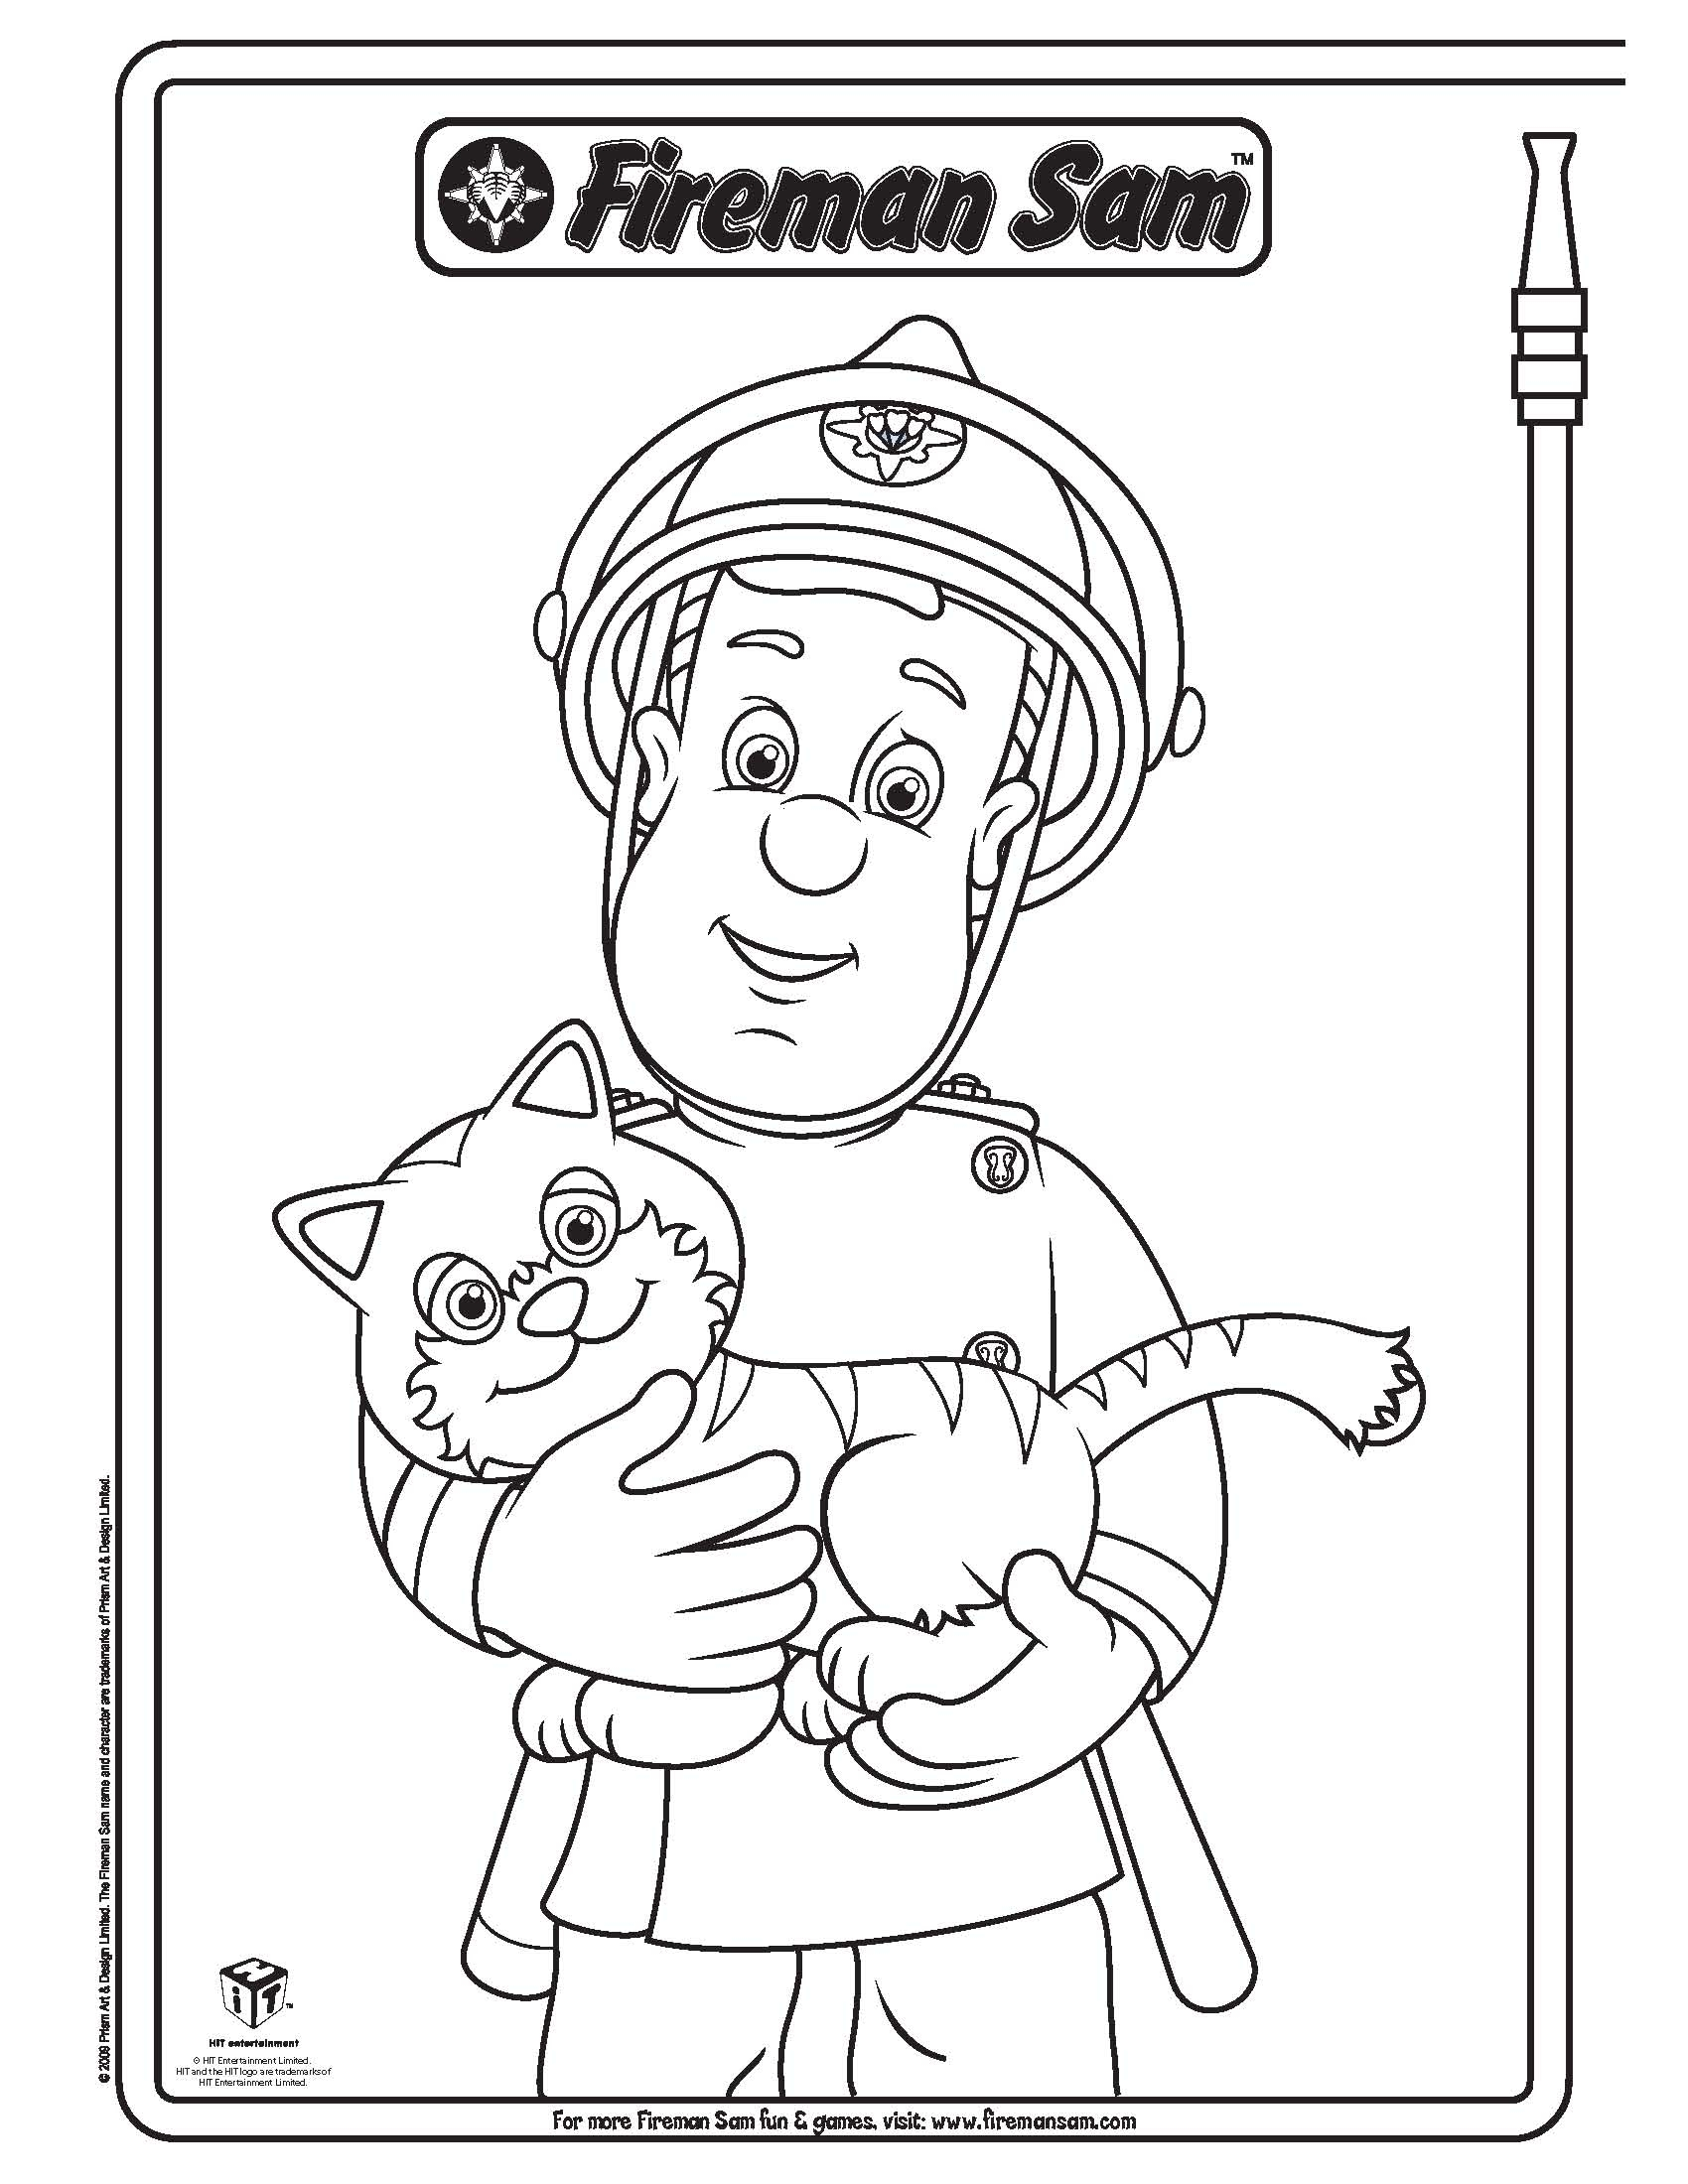 Fireman sam coloring pages to download